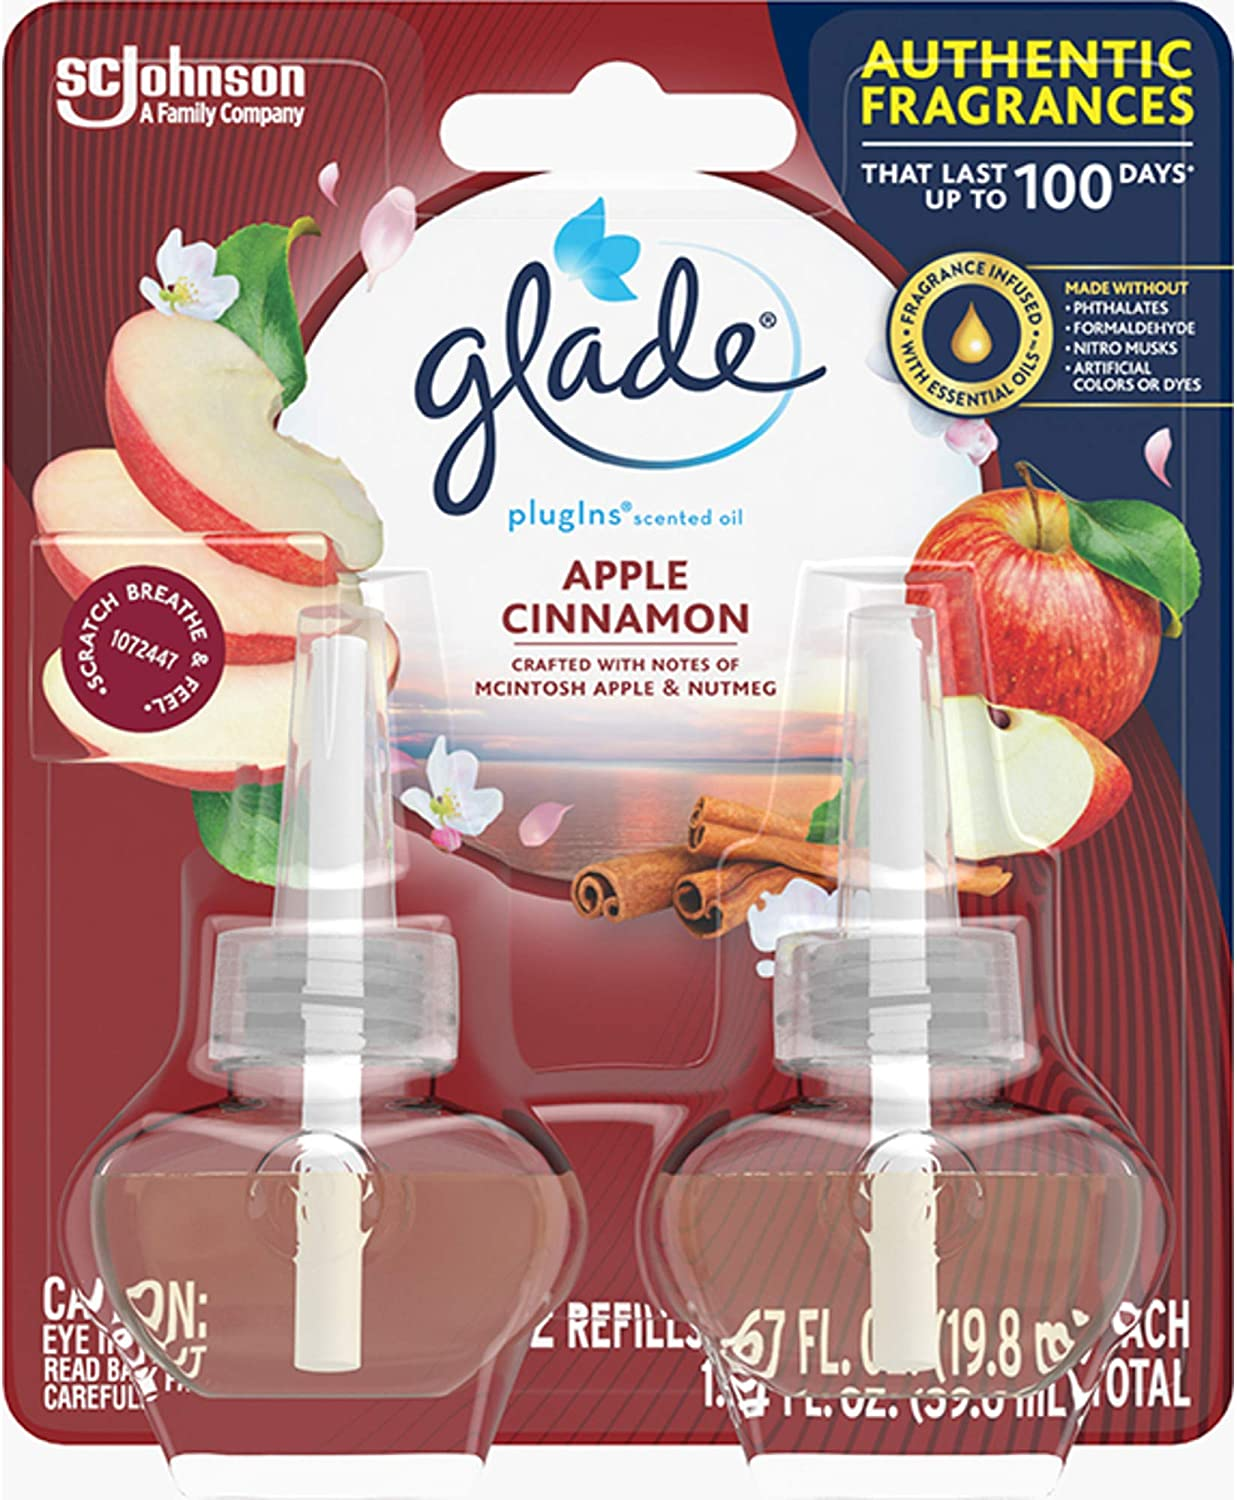 Glade - 13074 PlugIns Refills Air Freshener, Scented and Essential Oils for Home and Bathroom, Apple Cinnamon, 1.34 Oz, 12 Count